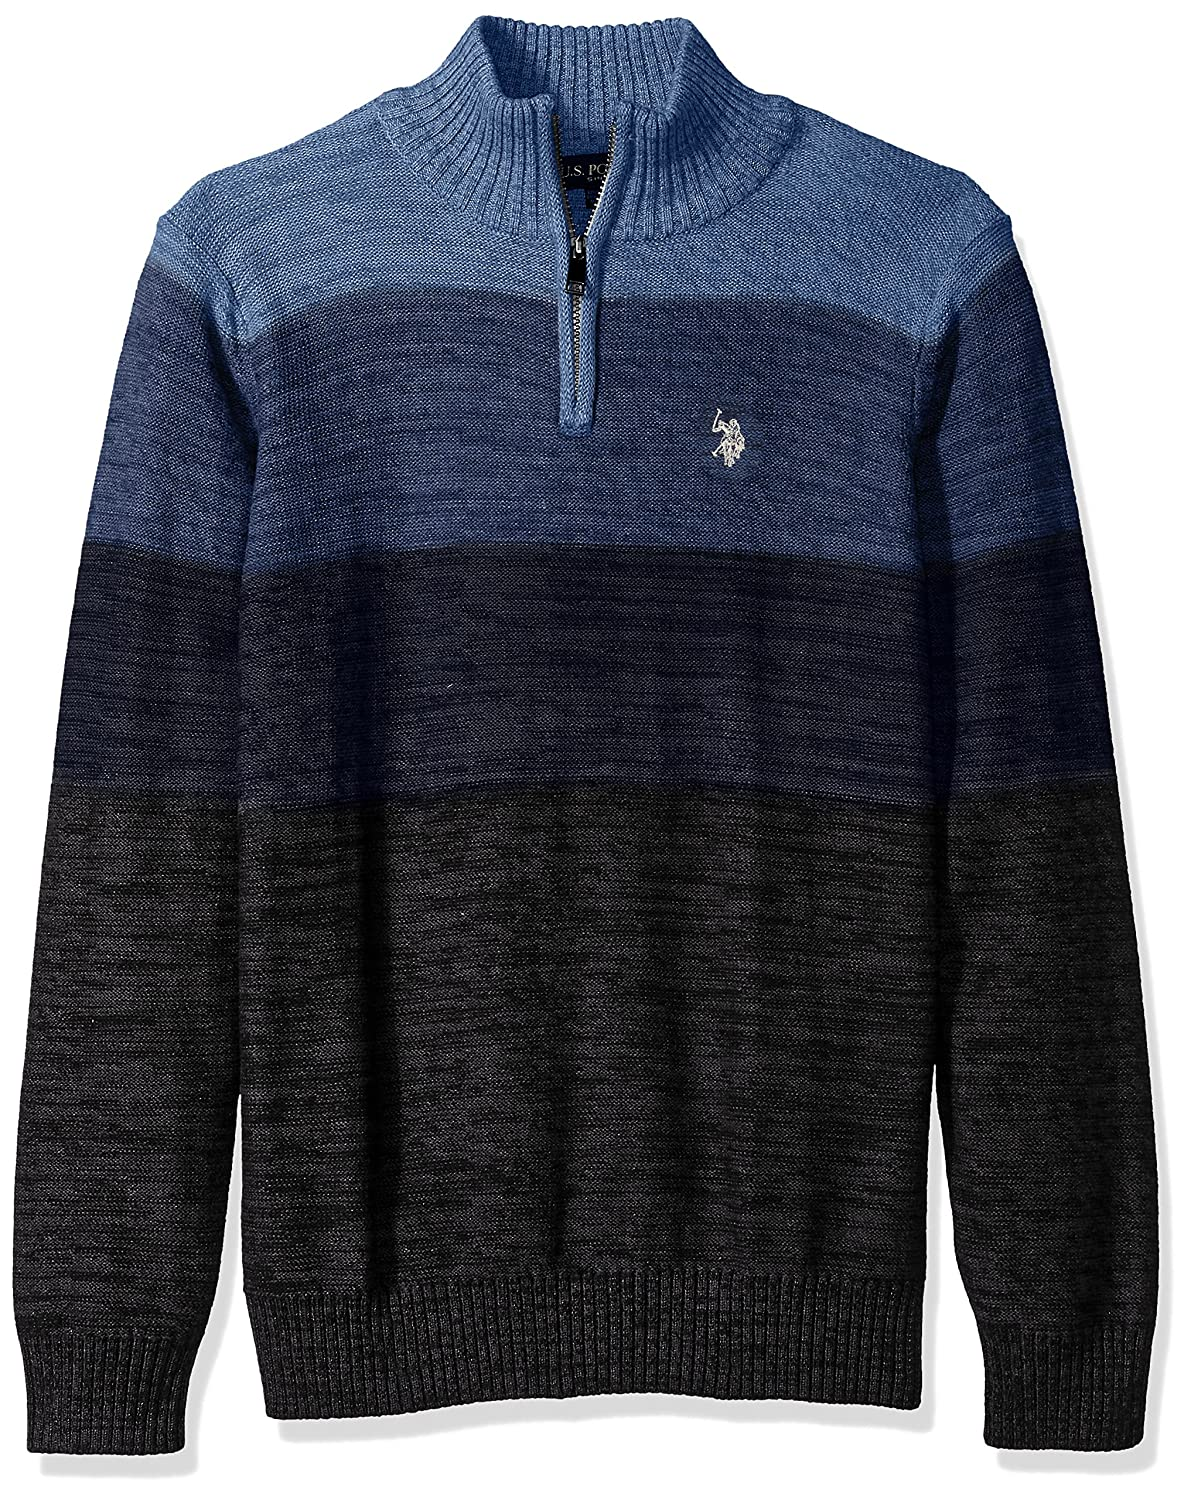 U.S. Polo Assn. Men's Reverse Jersey Mechanical Marl Sweater, ACUF7S5851